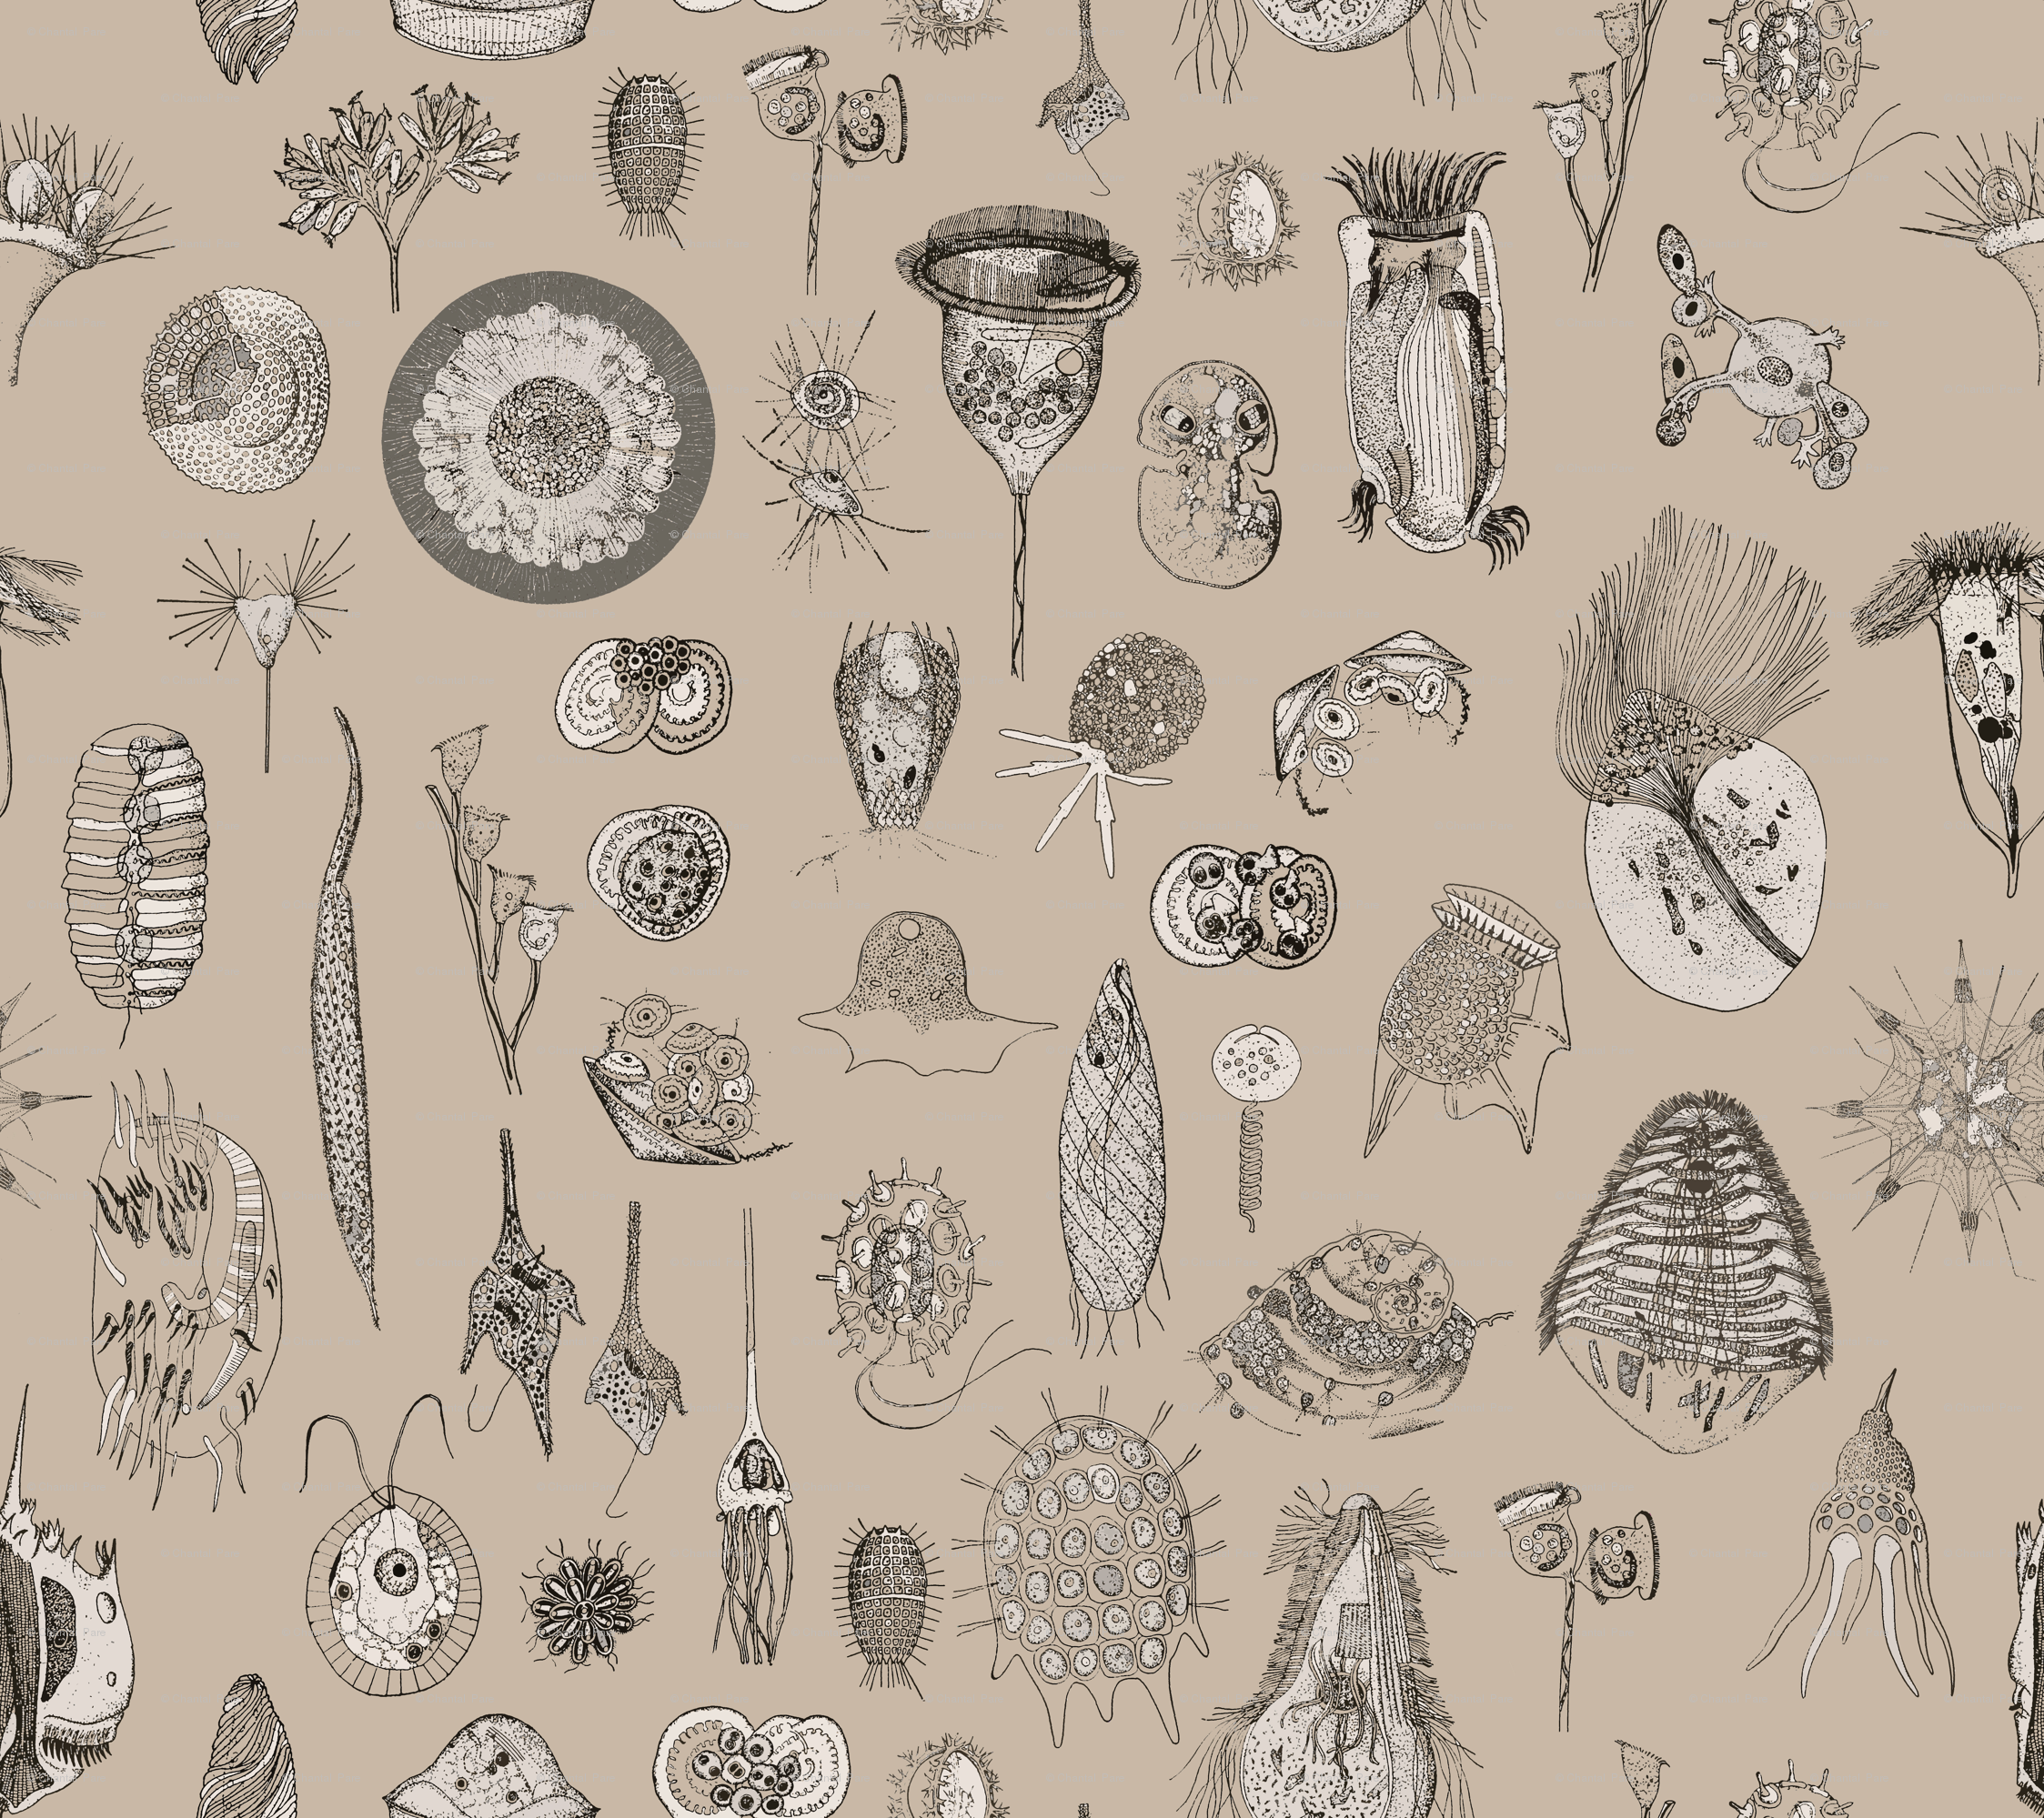 Super Giant Protozoa Beige wallpaper   chantal pare   Spoonflower 2247x1999